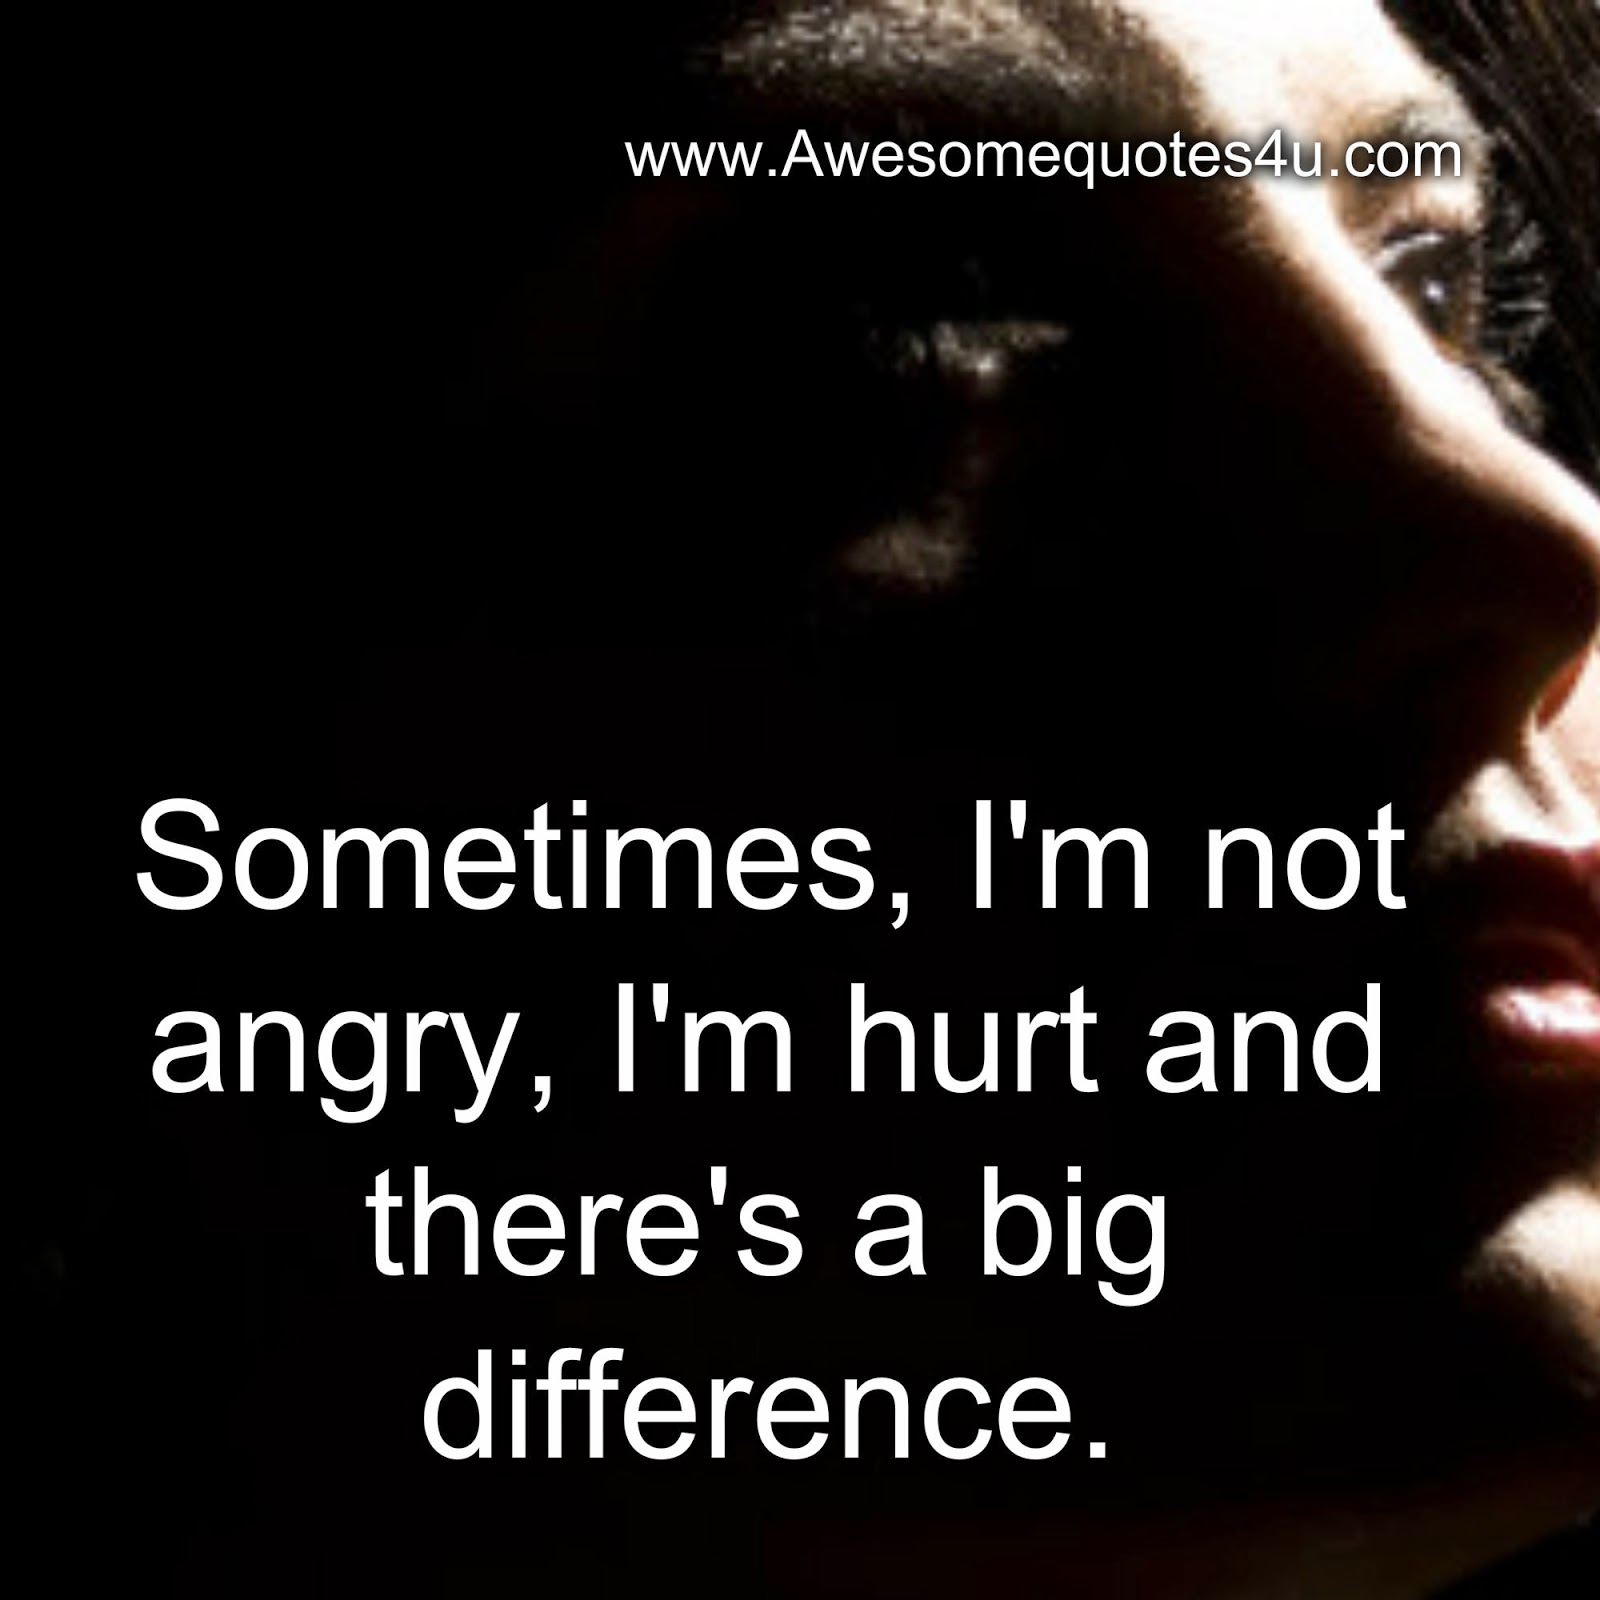 Awesome Quotes: Sometimes, I'm not angry, I'm hurt